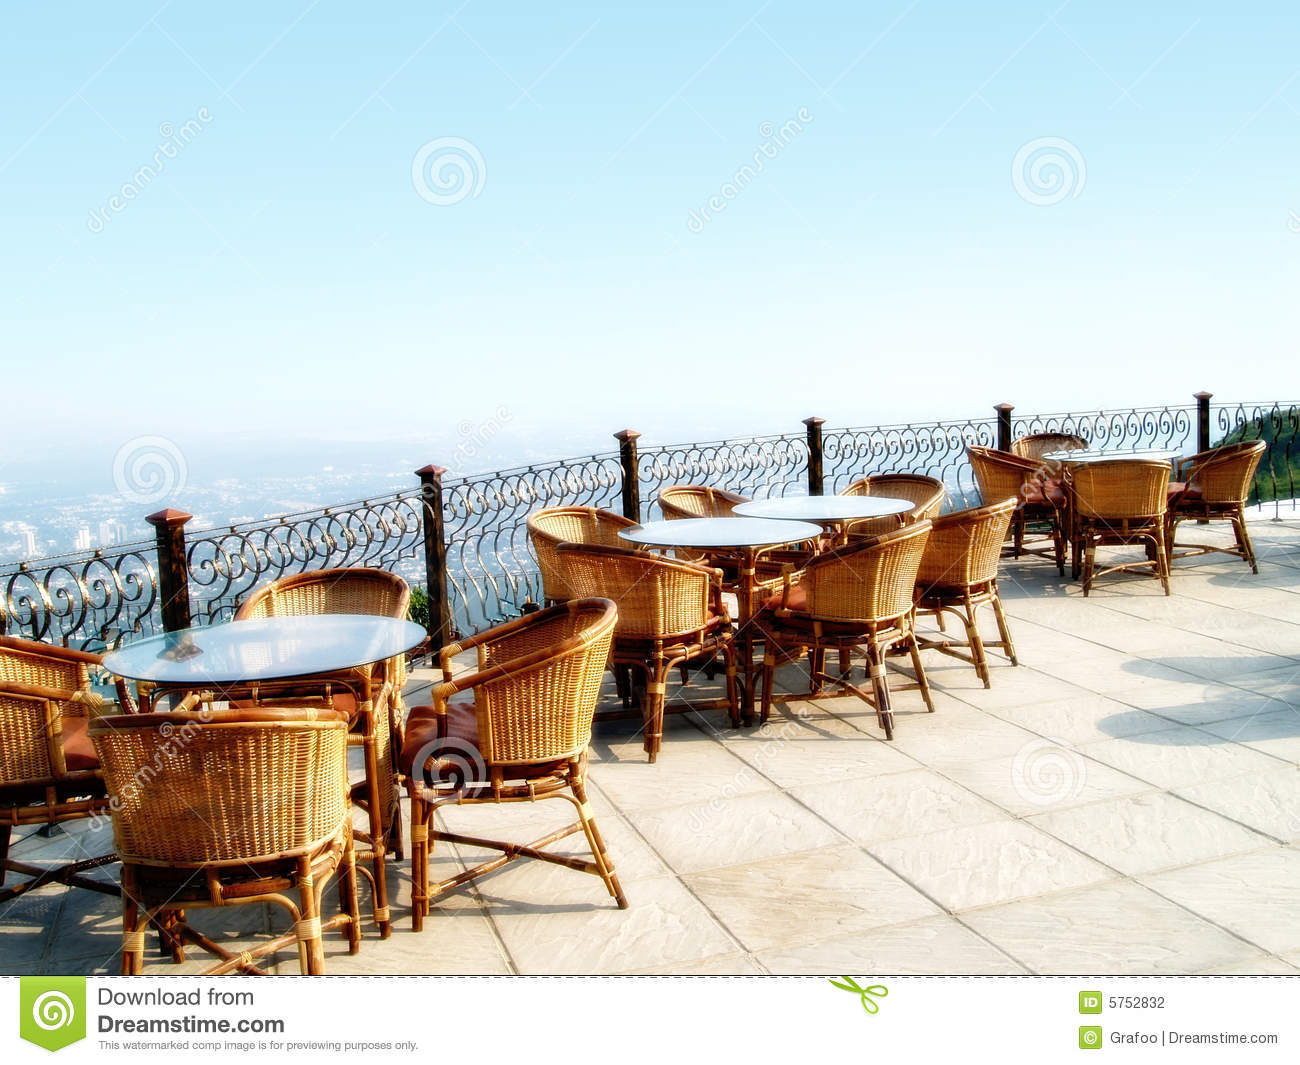 Outdoor restaurant seating stock photo. Image of open - 5752832